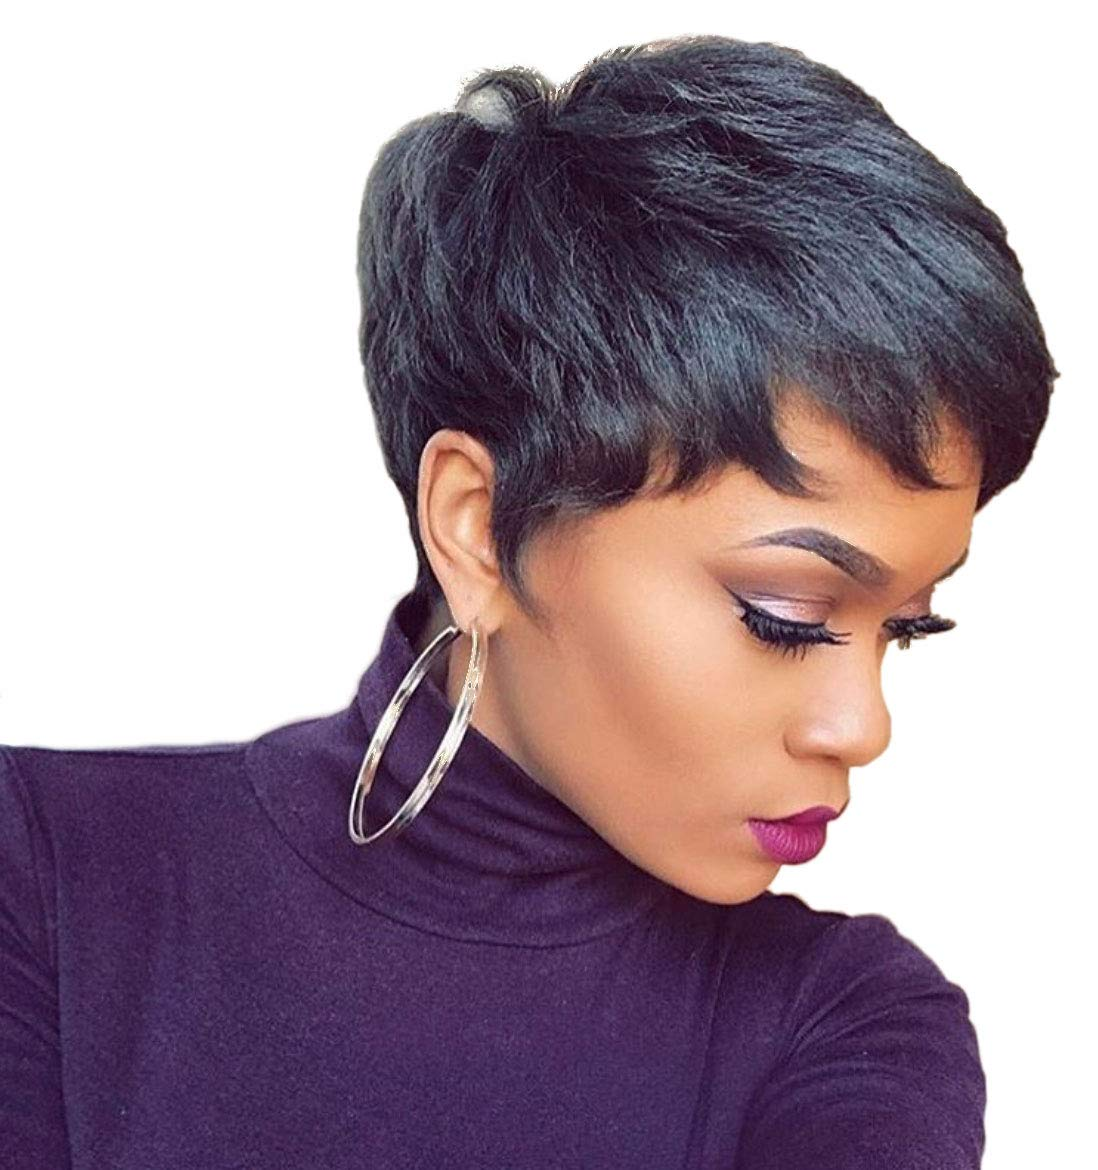 Naseily Short Hair Wigs For Black Women Curly